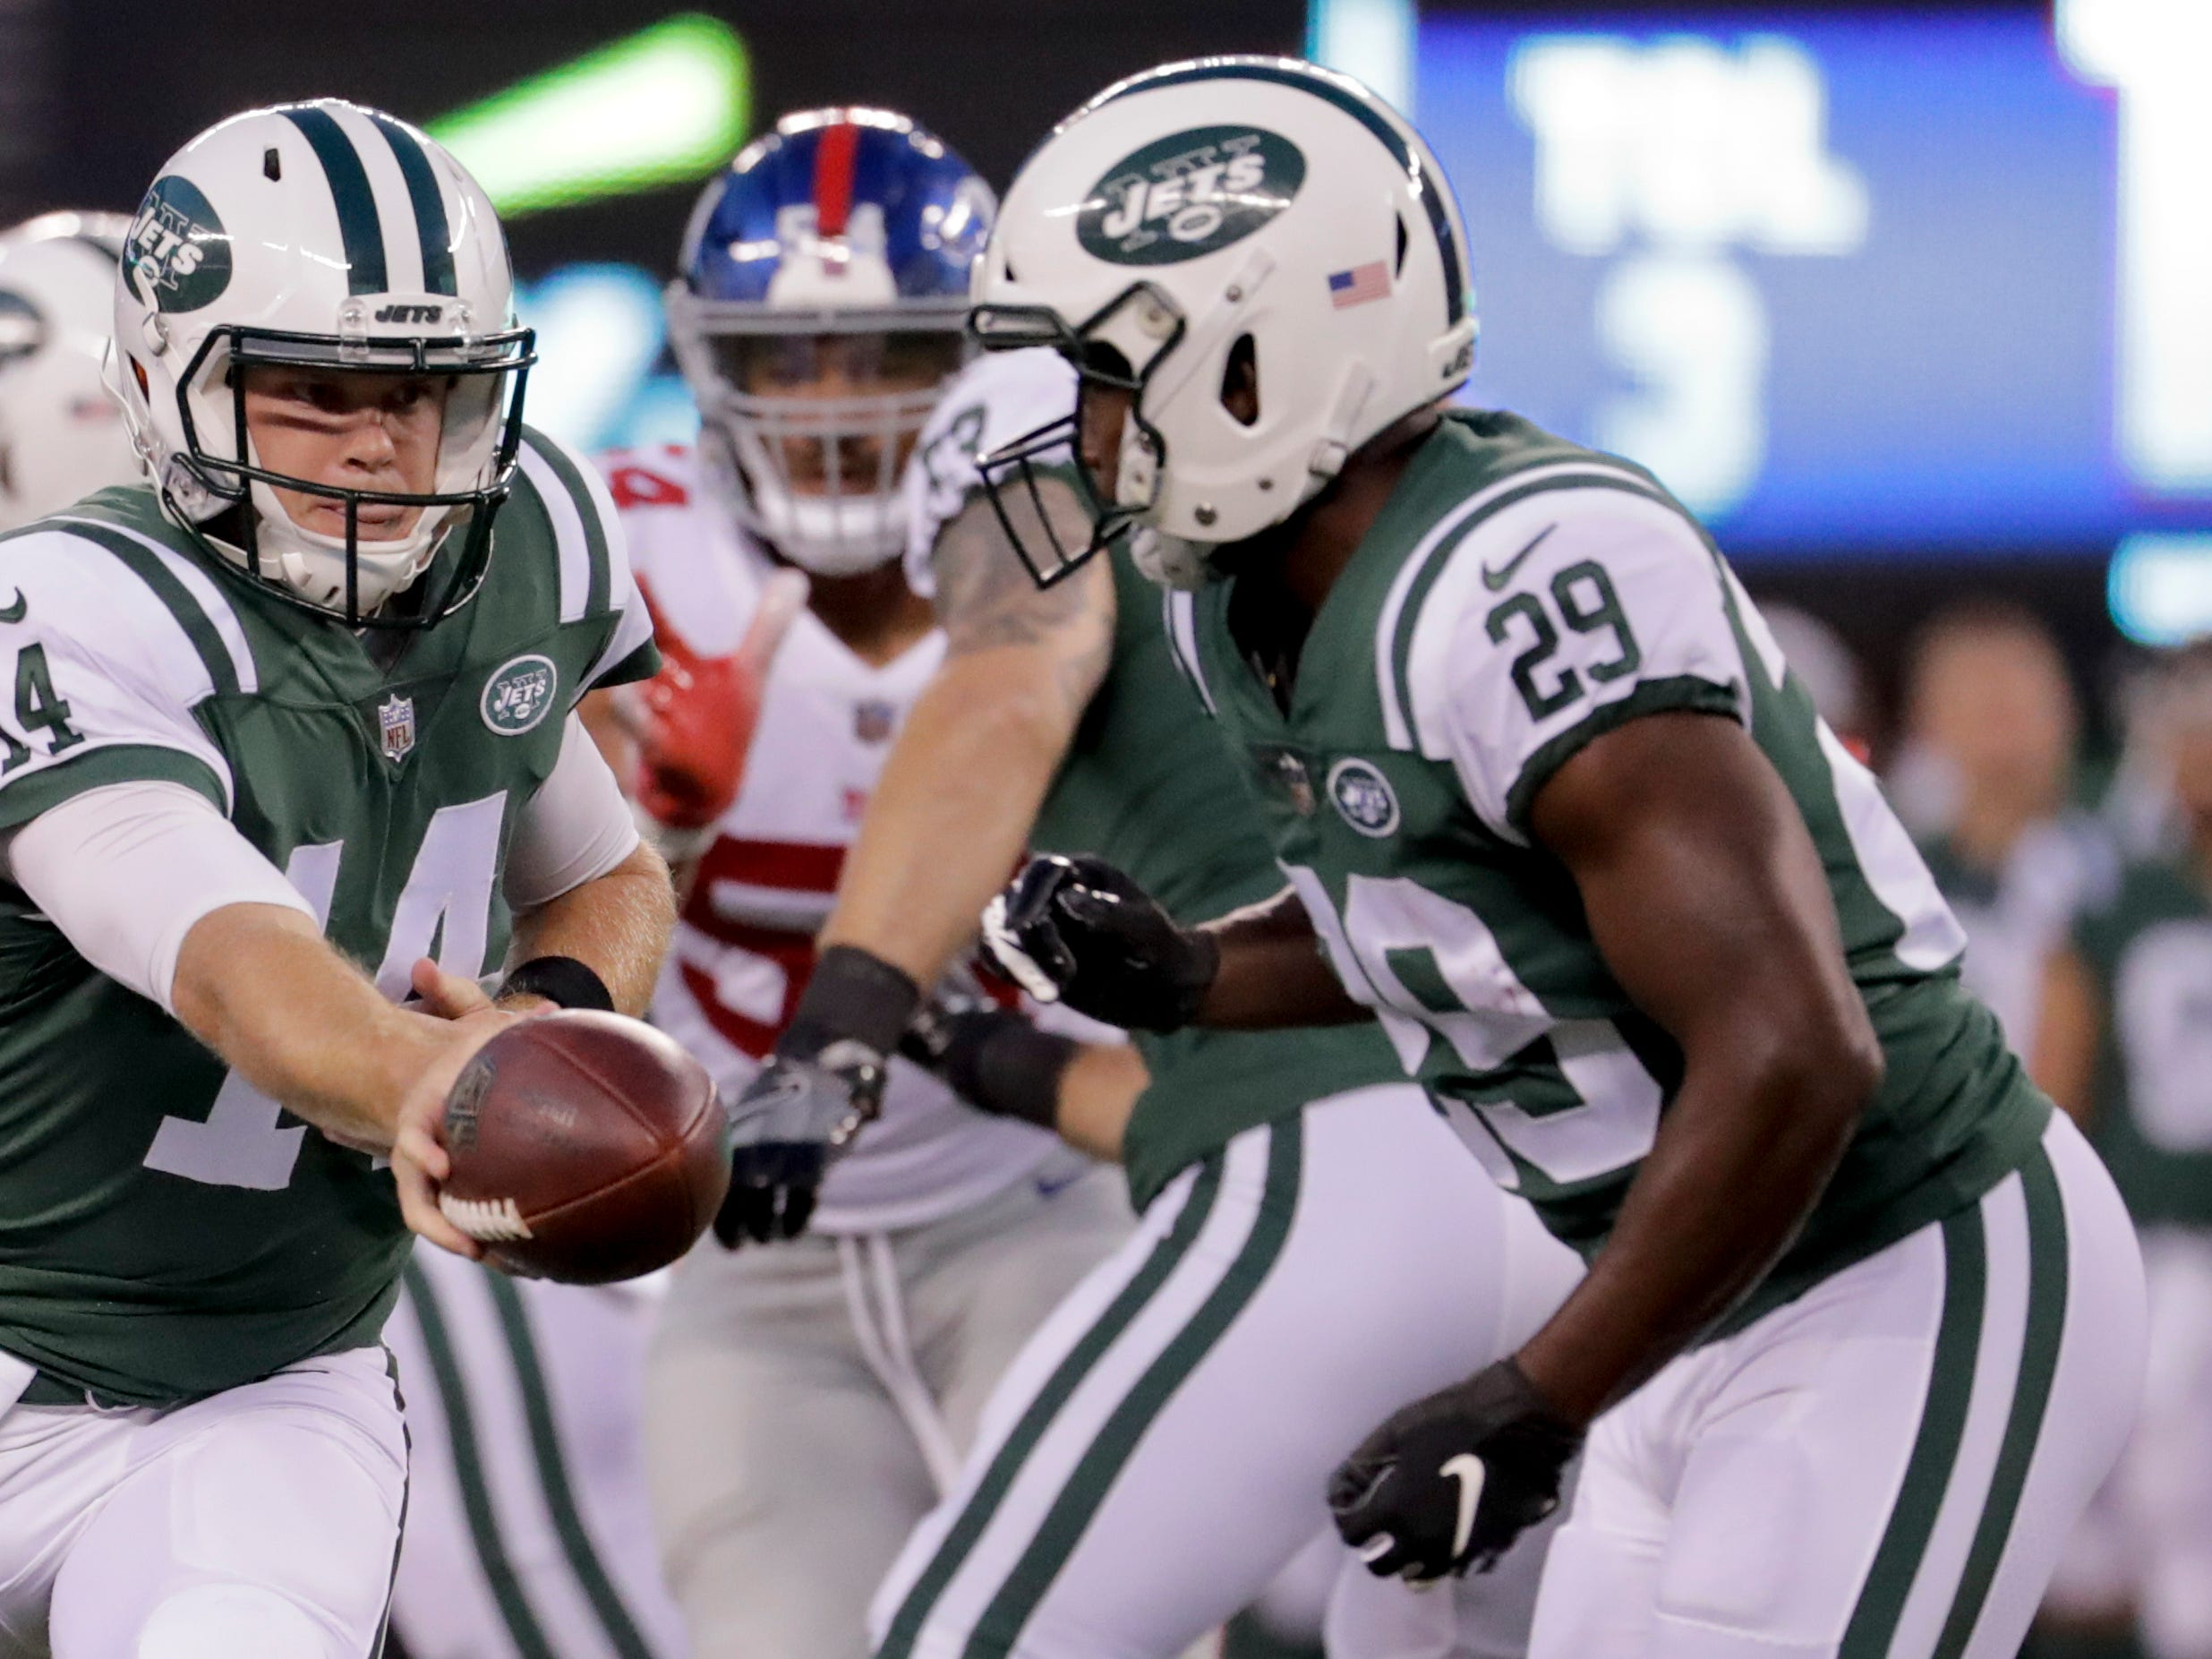 New York Jets quarterback Sam Darnold (14) hands off the ball to running back Bilal Powell (29) during the first quarter of an NFL football game, Friday, Aug. 24, 2018, in East Rutherford, N.J.